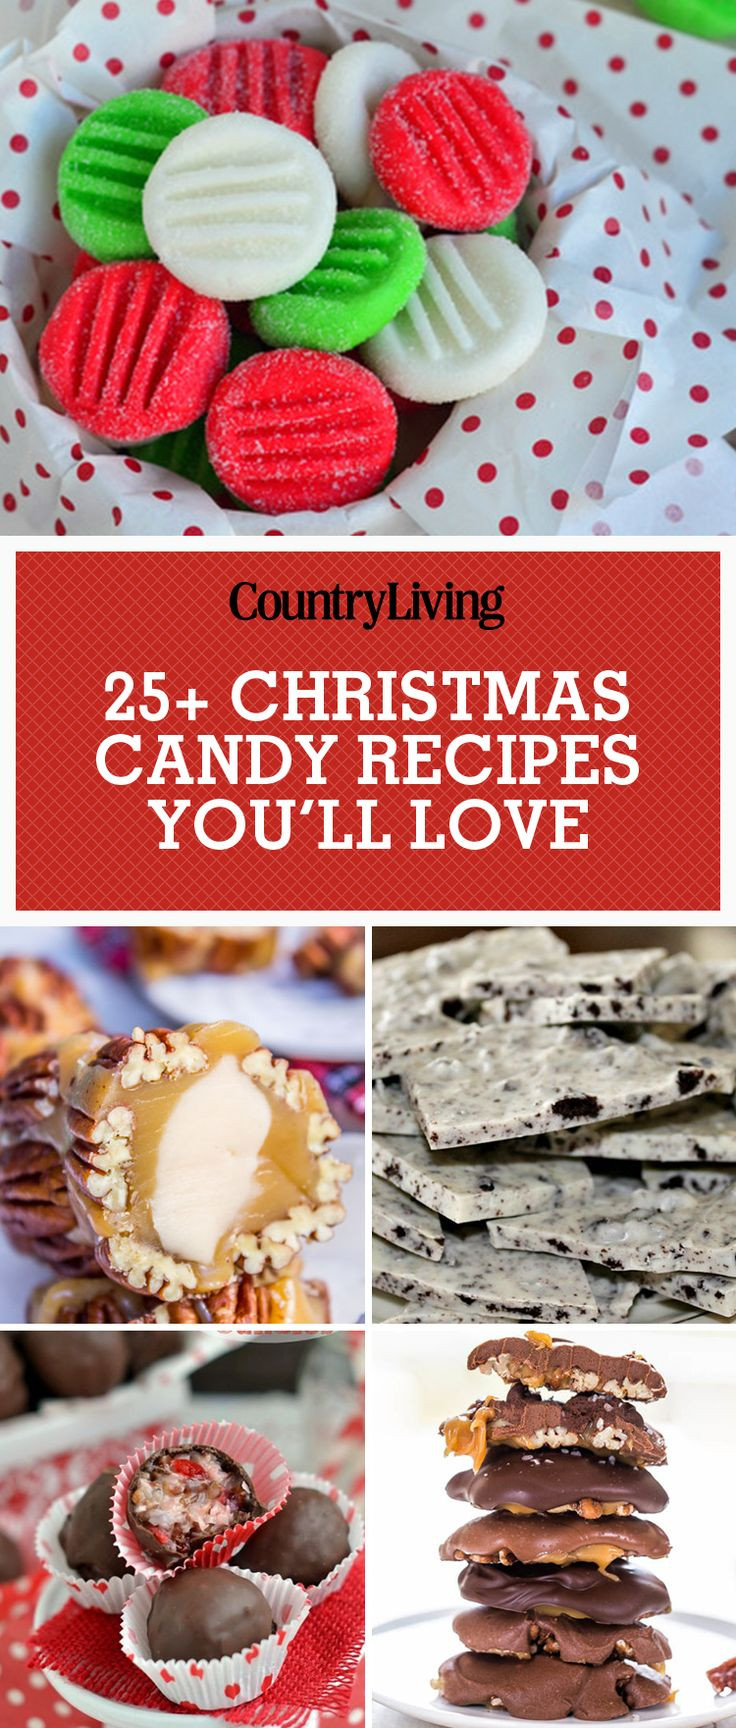 Pinterest Christmas Candy  17 Best ideas about Christmas Candy Gifts on Pinterest